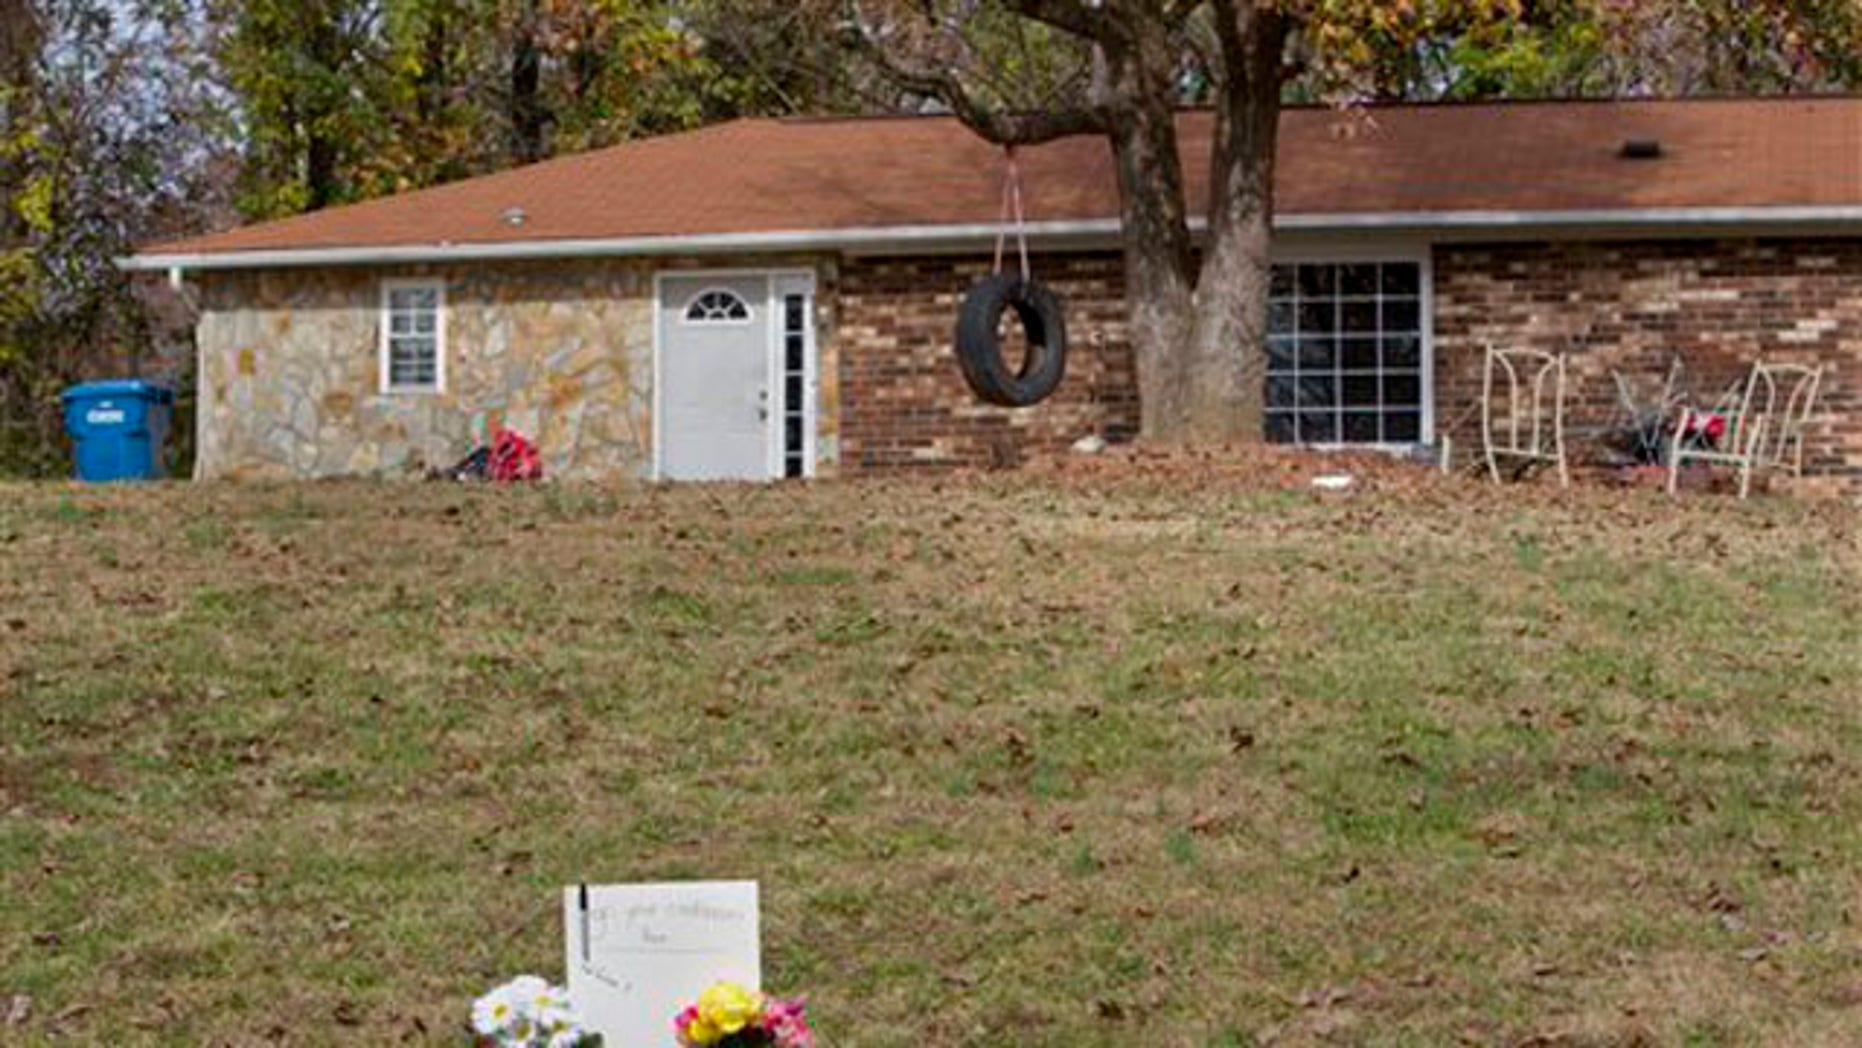 A memorial stands in front of a house on Cocoa Drive, where Mary Ann Holder is believed to have shot one of her sons, his girlfriend, and a niece and nephew, near Greensboro, N.C., Monday, Nov. 21, 2011.